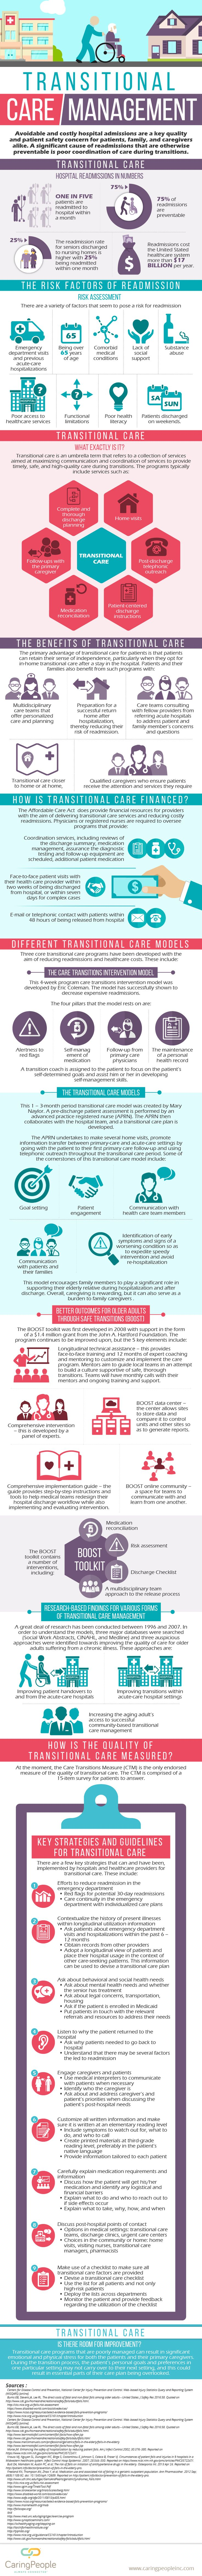 Transitional care management Infographic